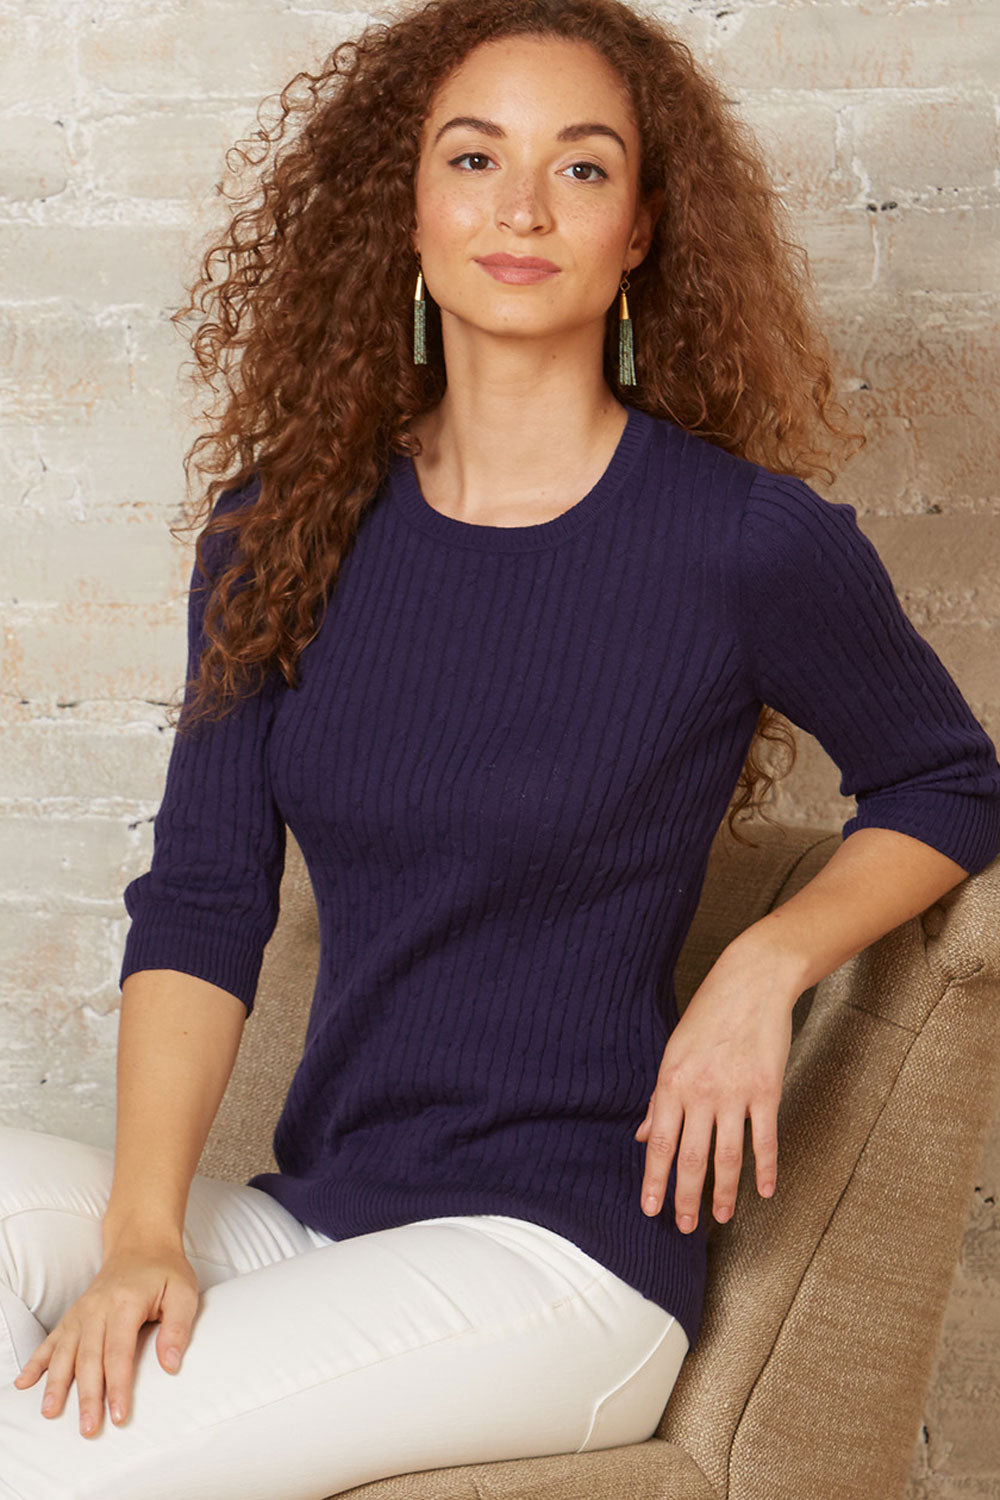 fair-indigo-womens-fair-trade-organic-3-4-sleeve-cable-crew-sweater